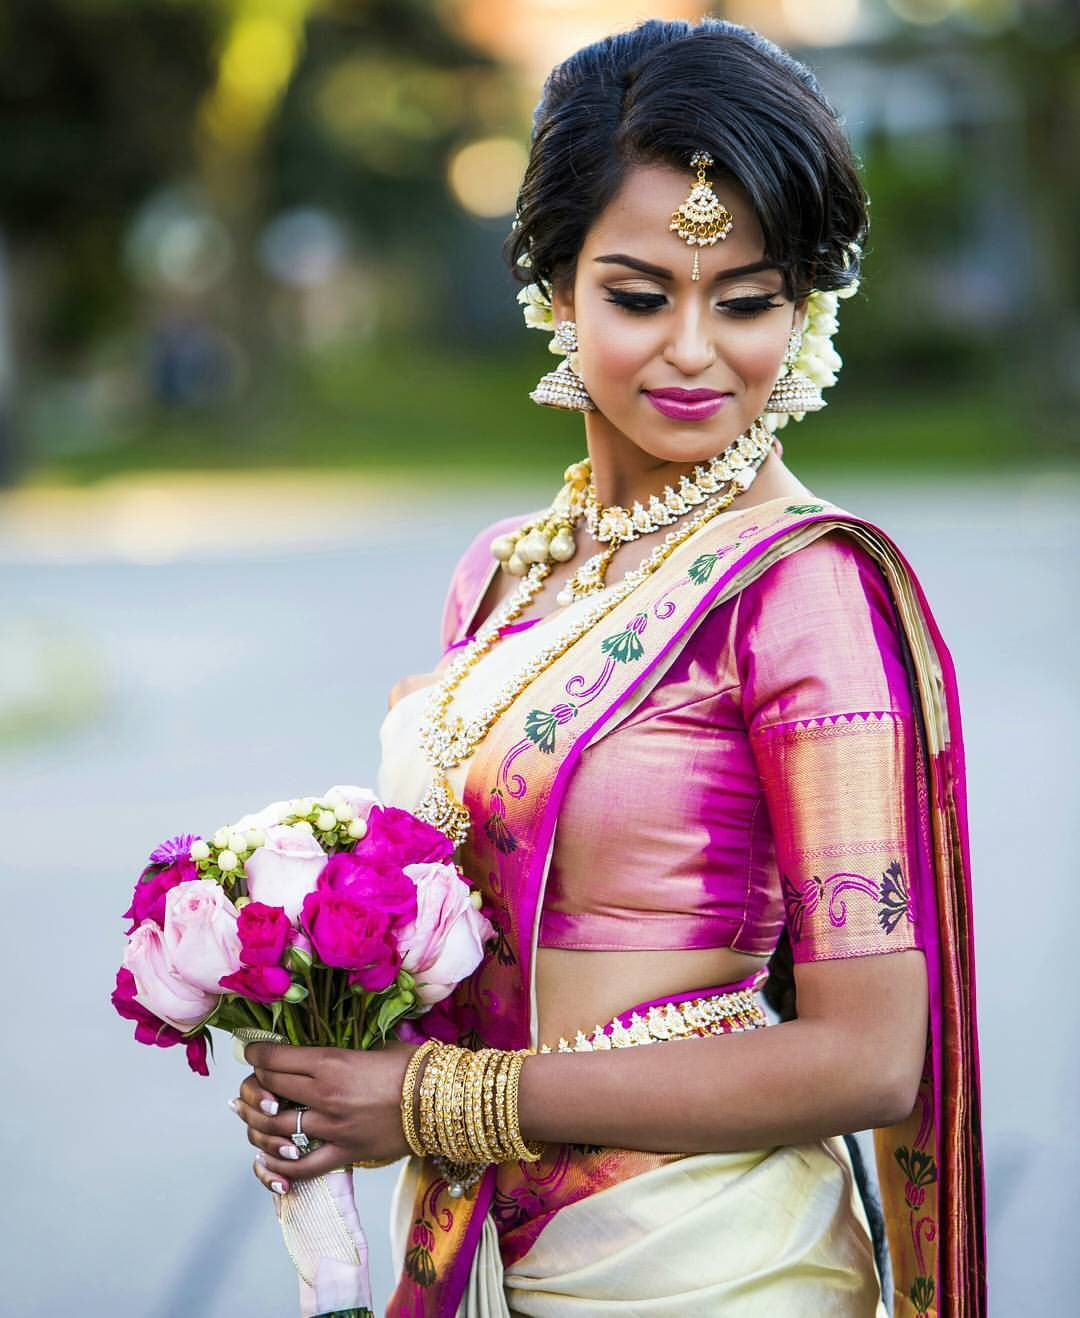 Wedding Hairstyle With Jasmine Flower: South Indian Bride. Gold Indian Bridal Jewelry.Temple